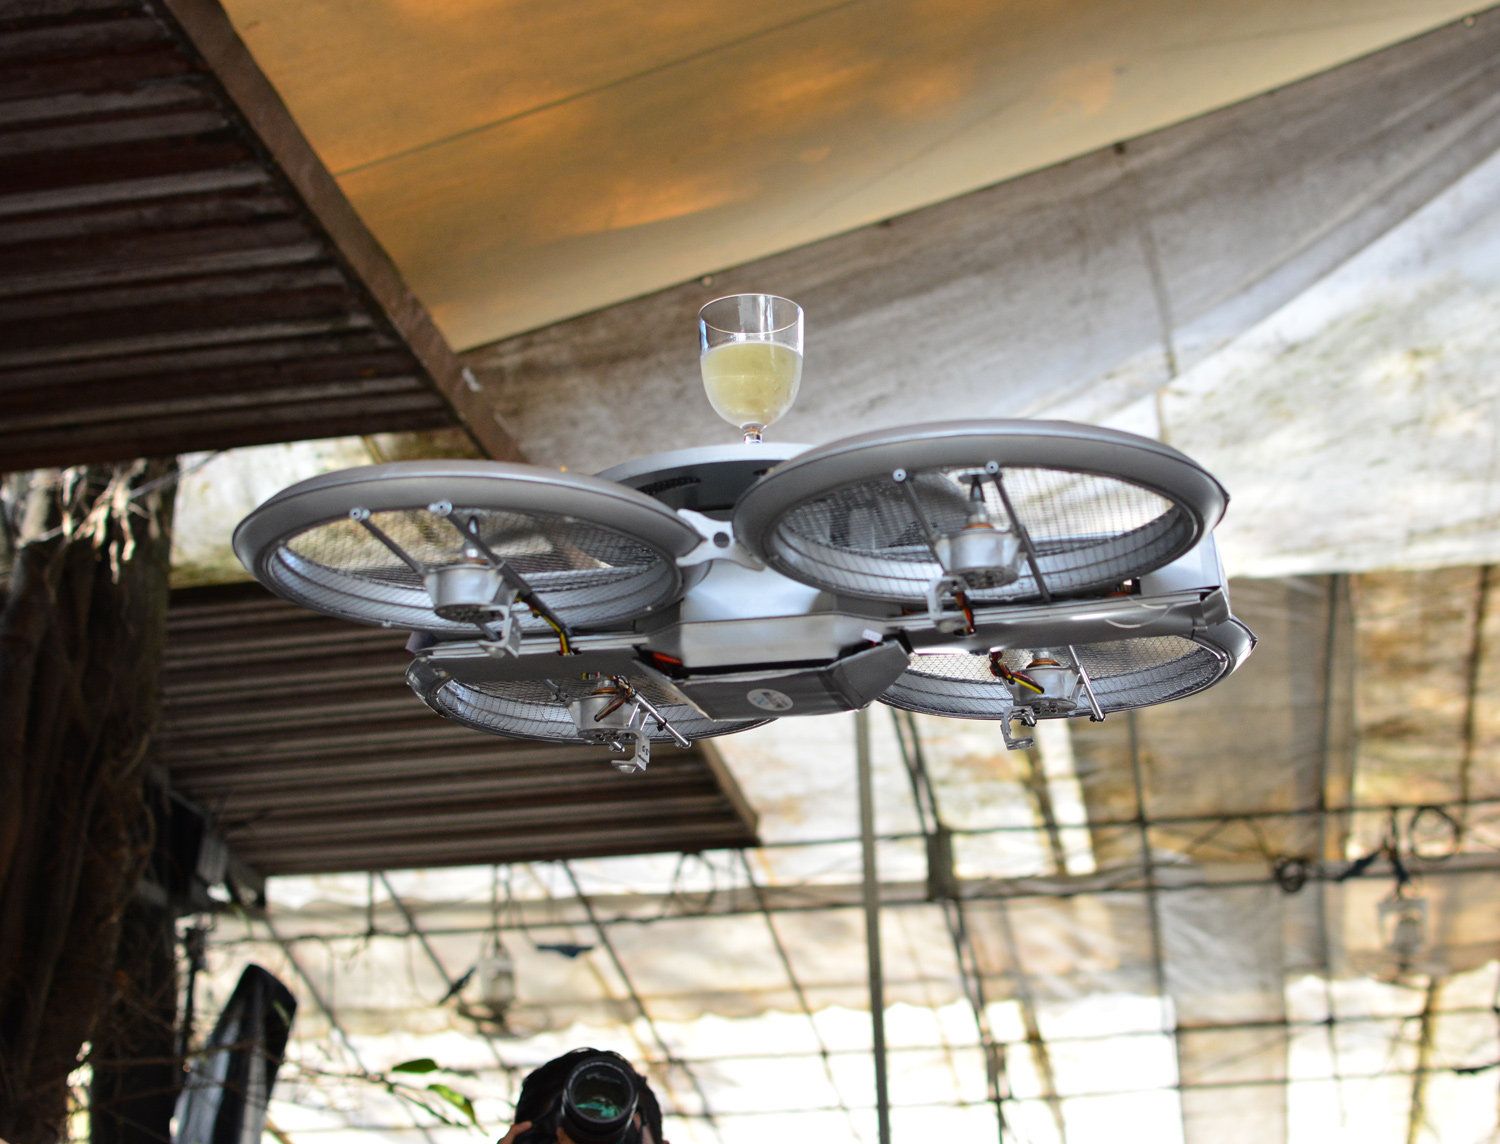 The Timbre Group in Singapore is to deploy flying helicopter drone waiters at all of its restaurant in late 2015